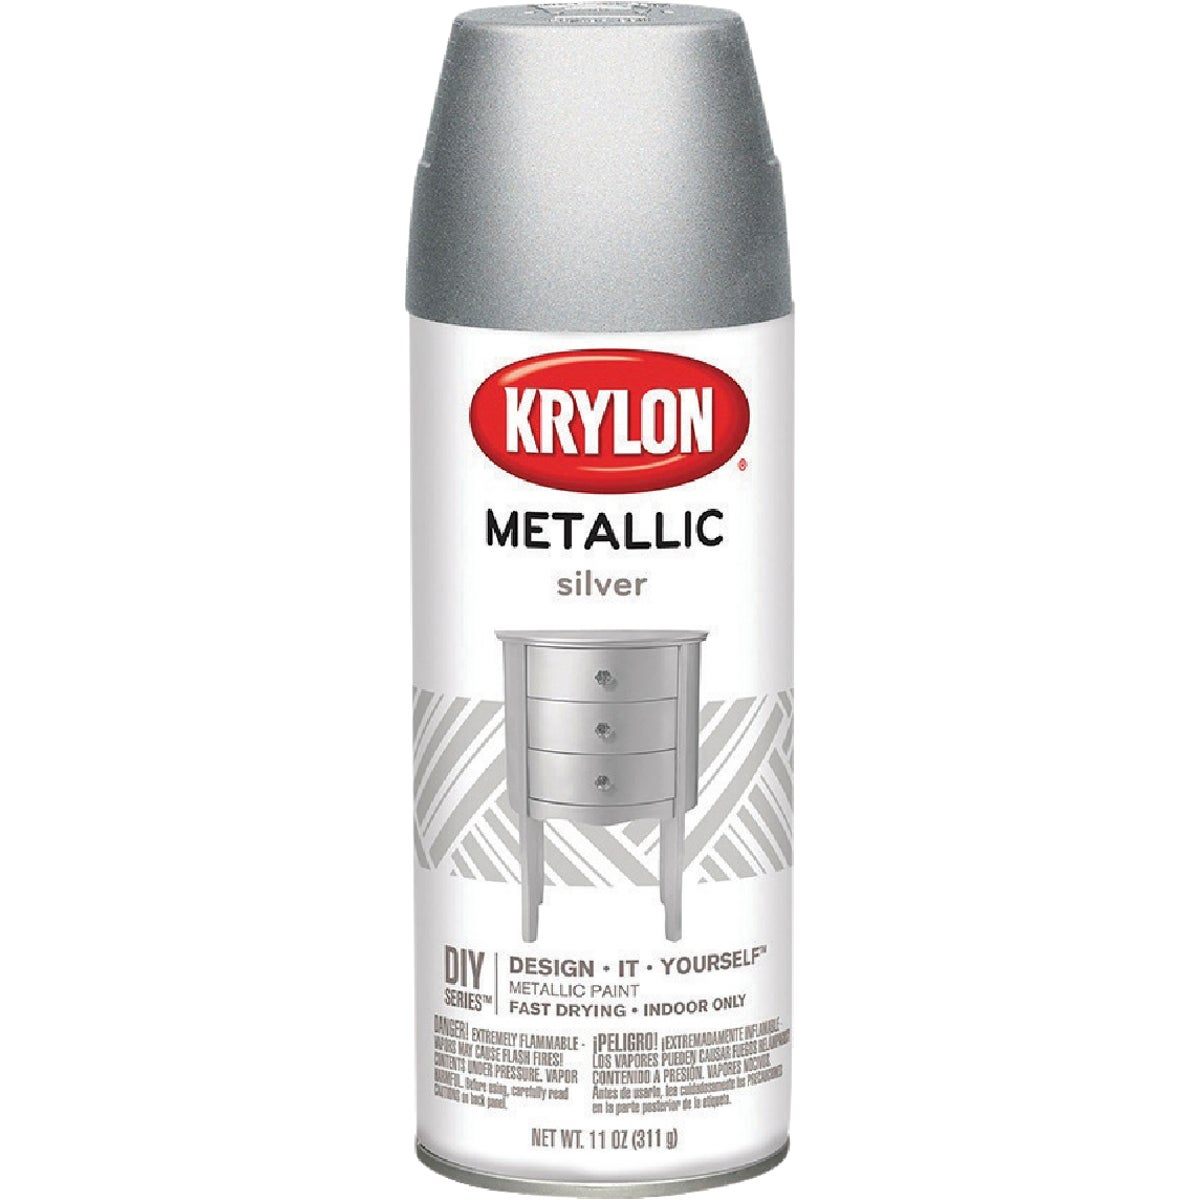 METLC SILVER SPRAY PAINT - 1406 by Krylon/consumer Div